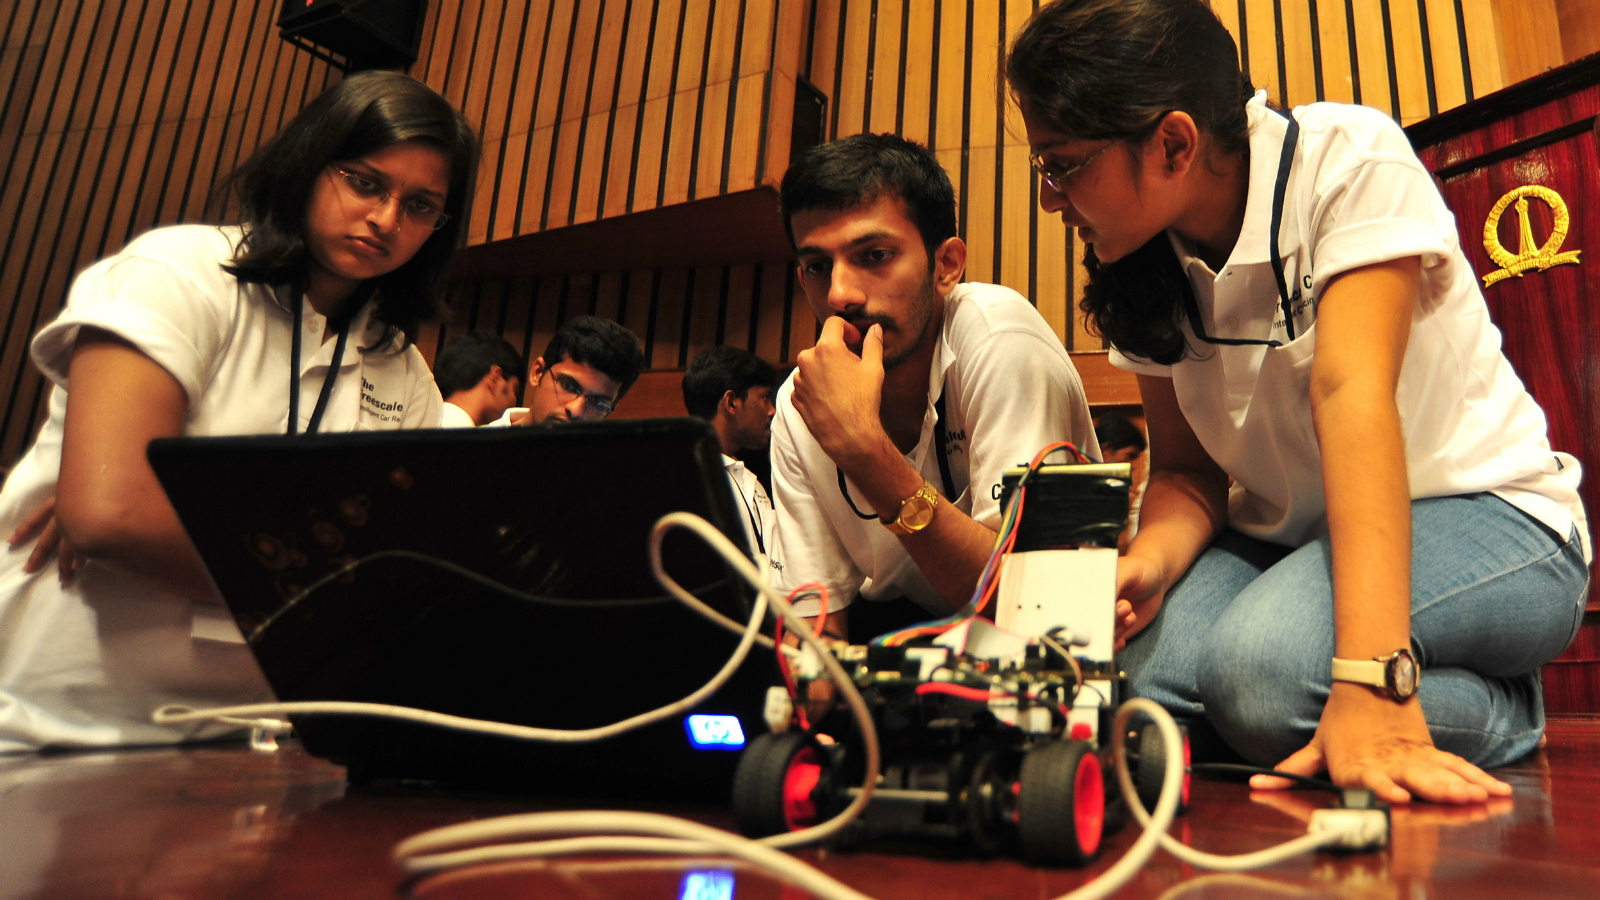 Engineering students from various colleges prepare their smart cars before taking part in the 'unique intelligent car race' for engineering students organized by Freescale Semiconductor India in association with Centre for Electronic Design and Technology (CEDT) from the Indian Institute of Science, in the southern Indian city of Bangalore, on 19 September 2011. Around 127 teams from 35 engineering college students across India, take part in the Freescale's global imitative to promote innovation among engineering students and offer them a hands on opportunity to their engineering skills to test by creating microcontroller (MCU) programming that enables model cars to perform optimally under test conditions during the race.